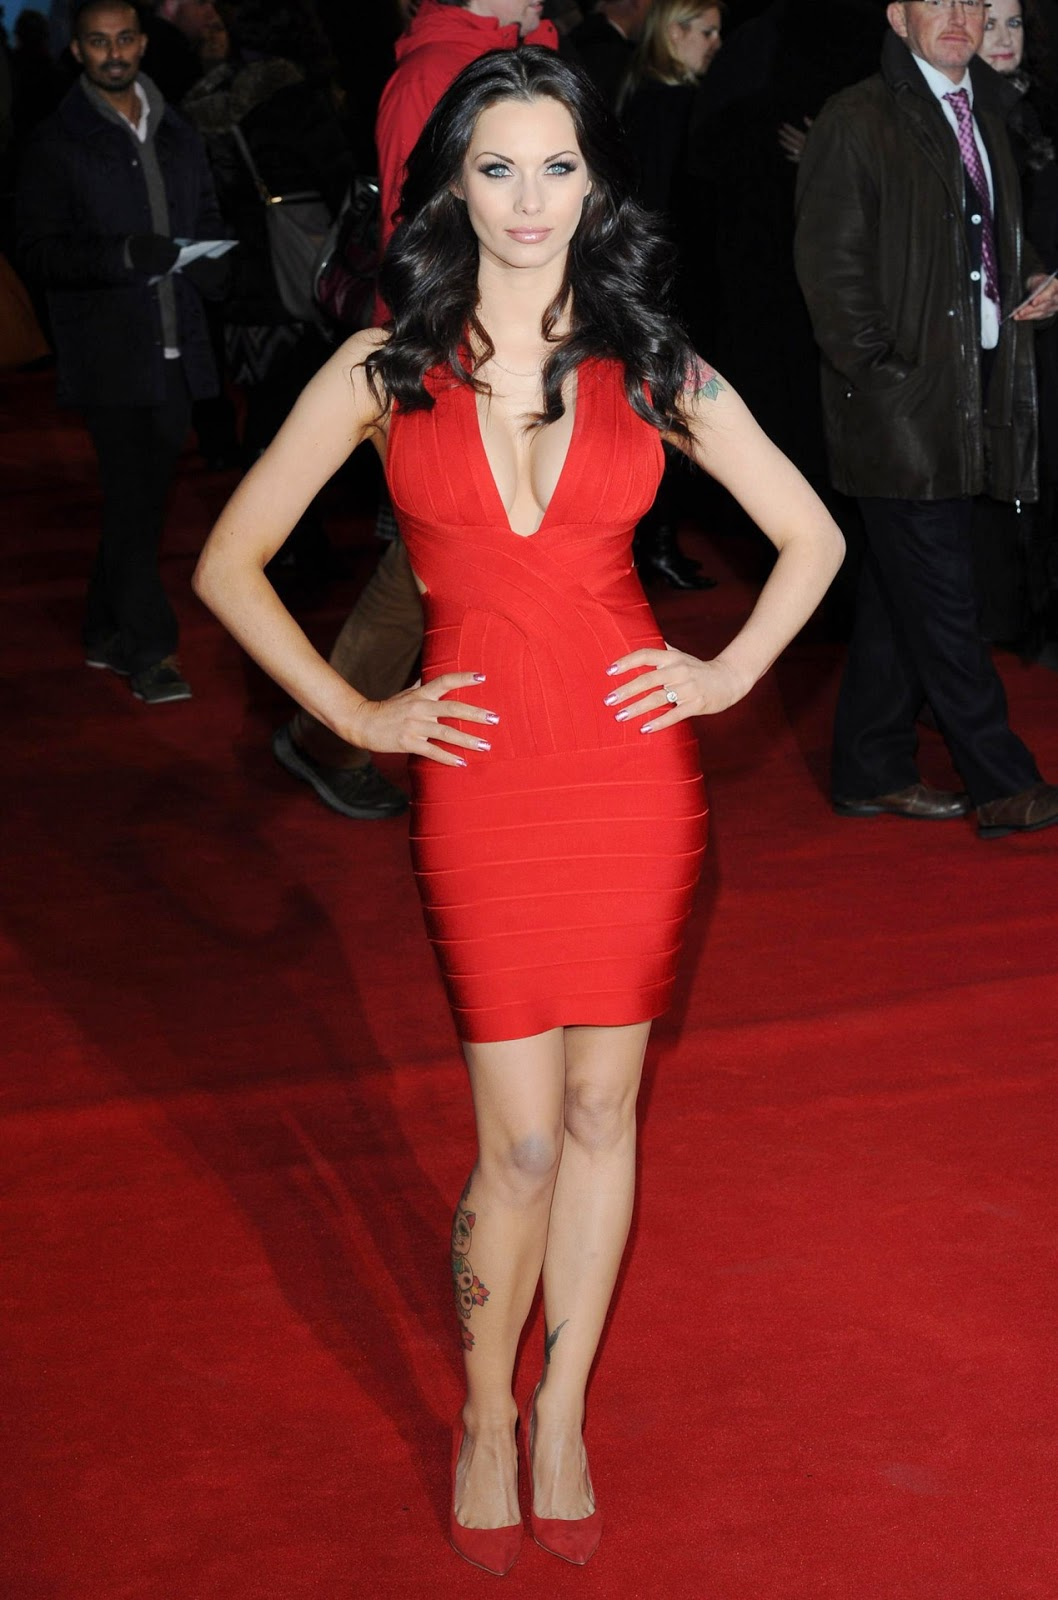 Jessica-jane clement images 15